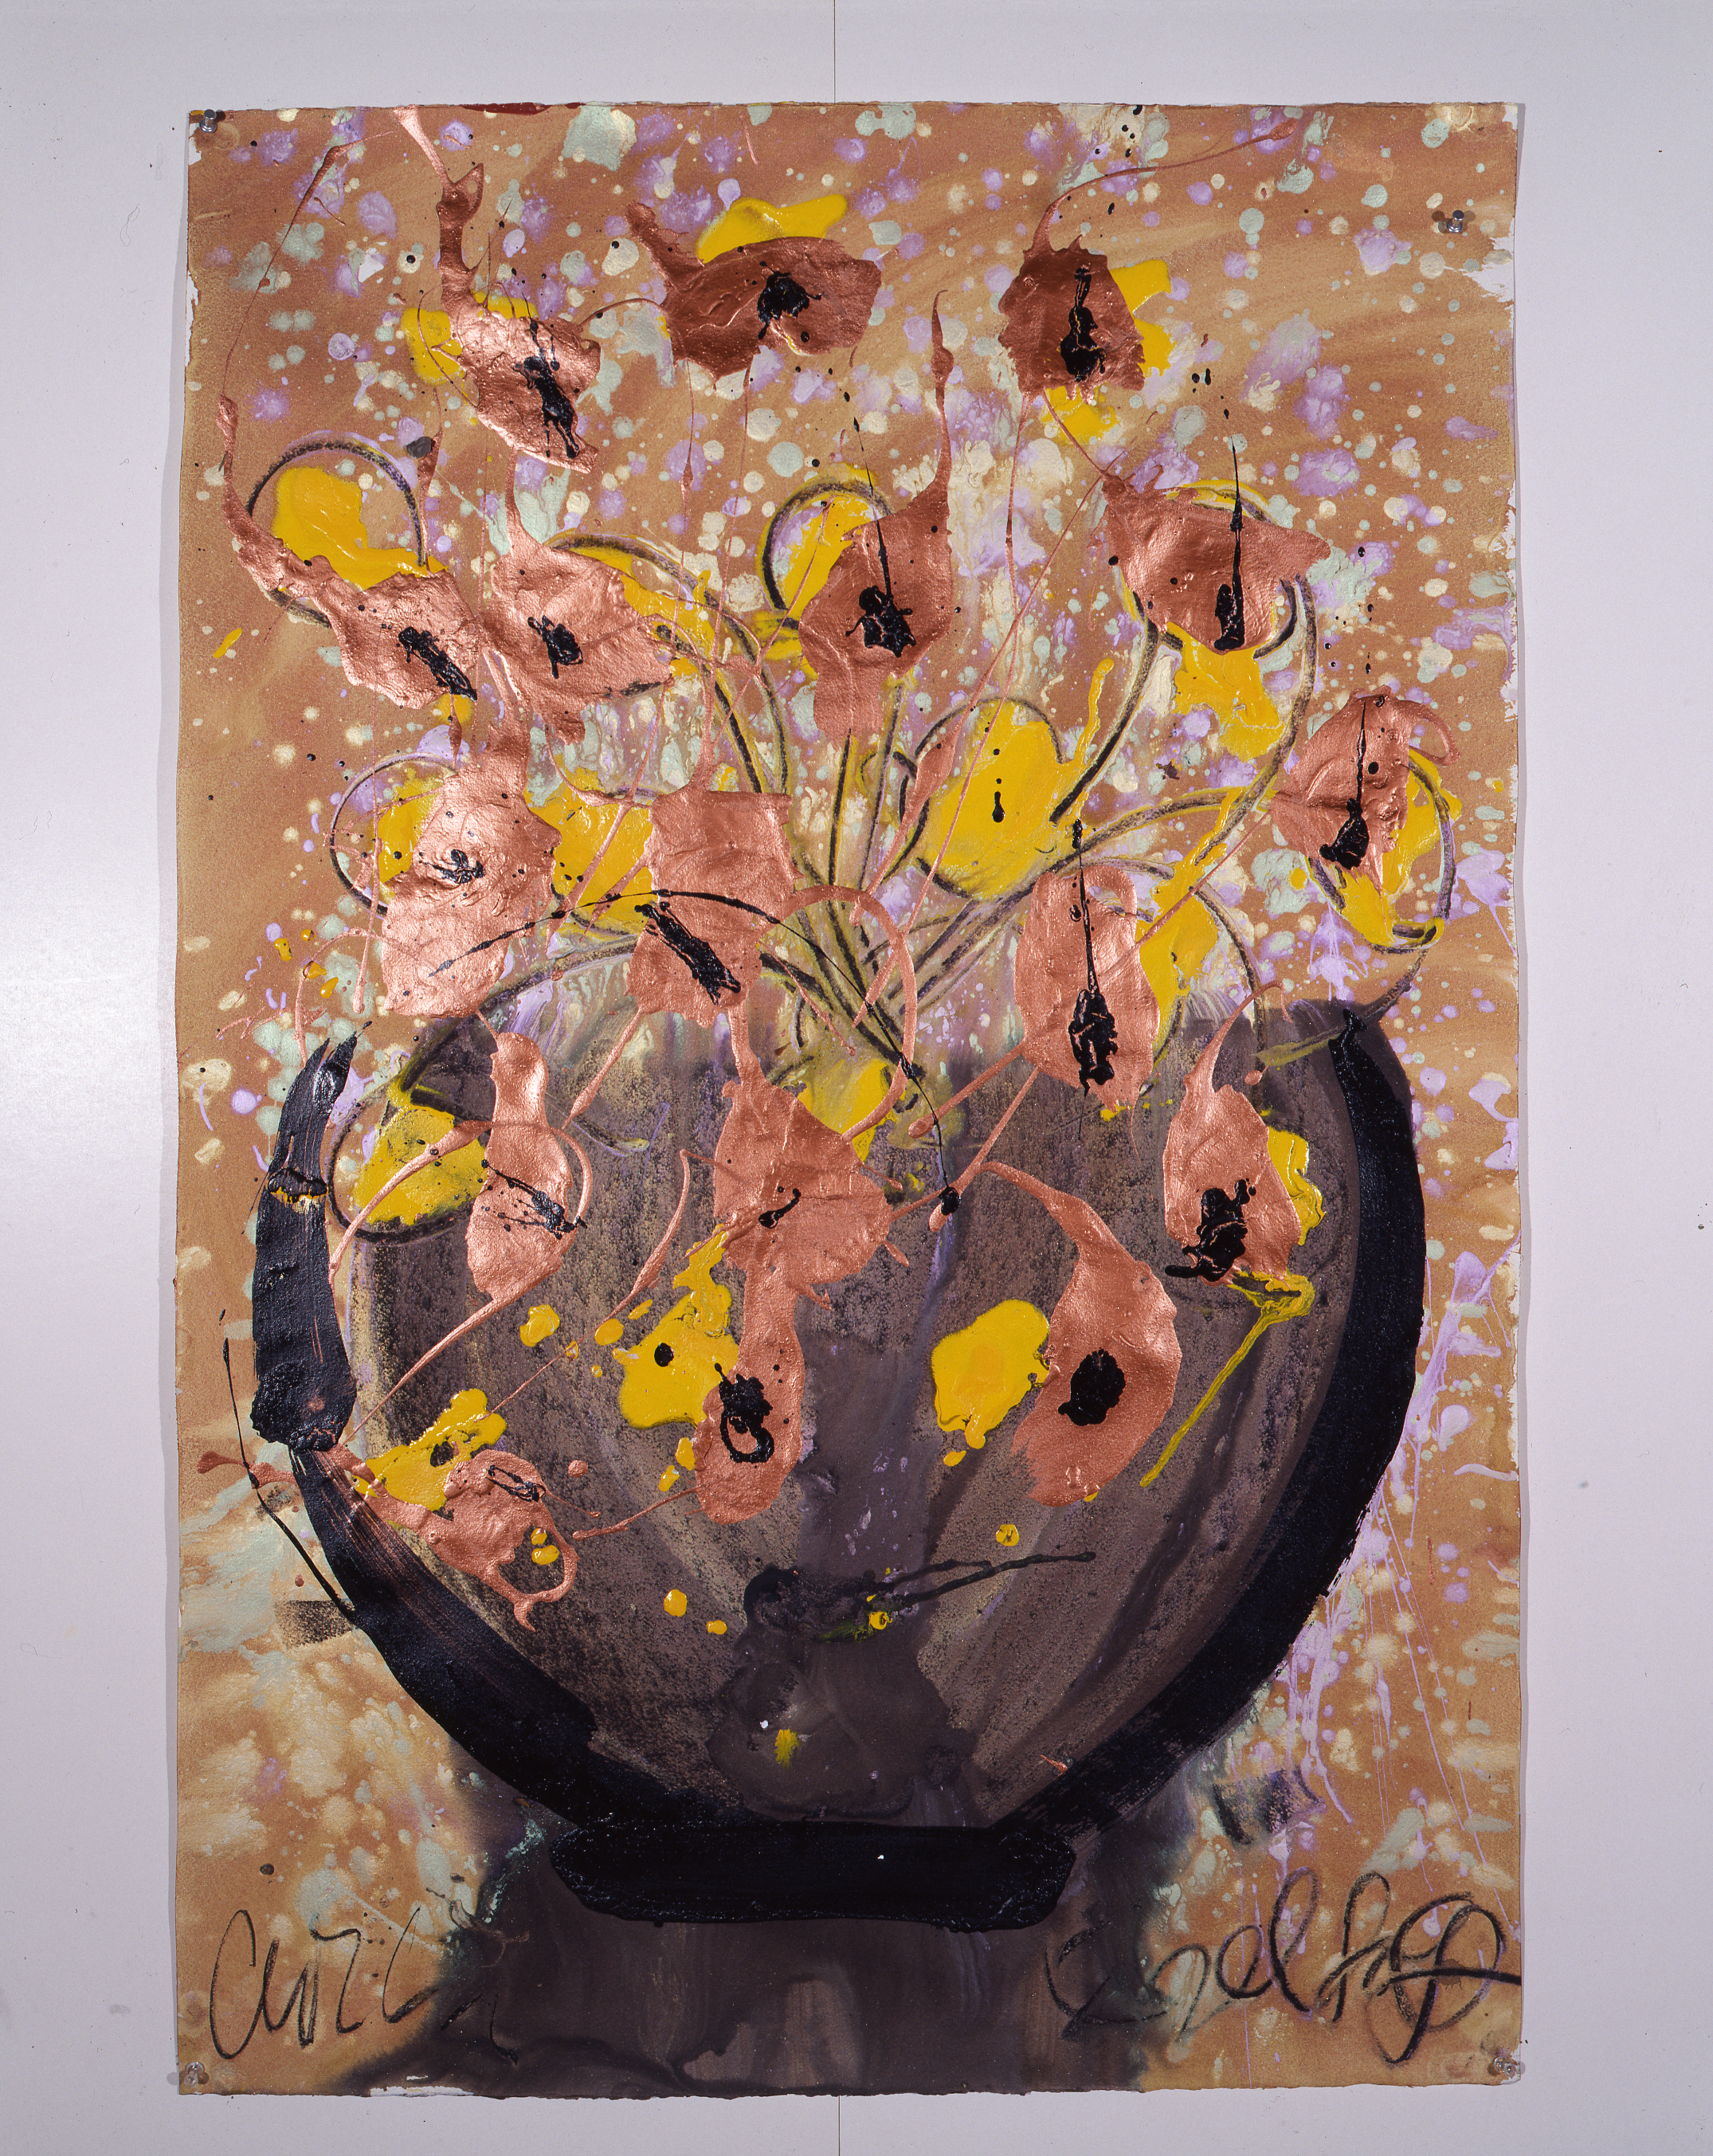 Dale Chihuly, Ebeltoft Drawing, (1991, mixed media on paper, 45 x 30 inches), DC.348